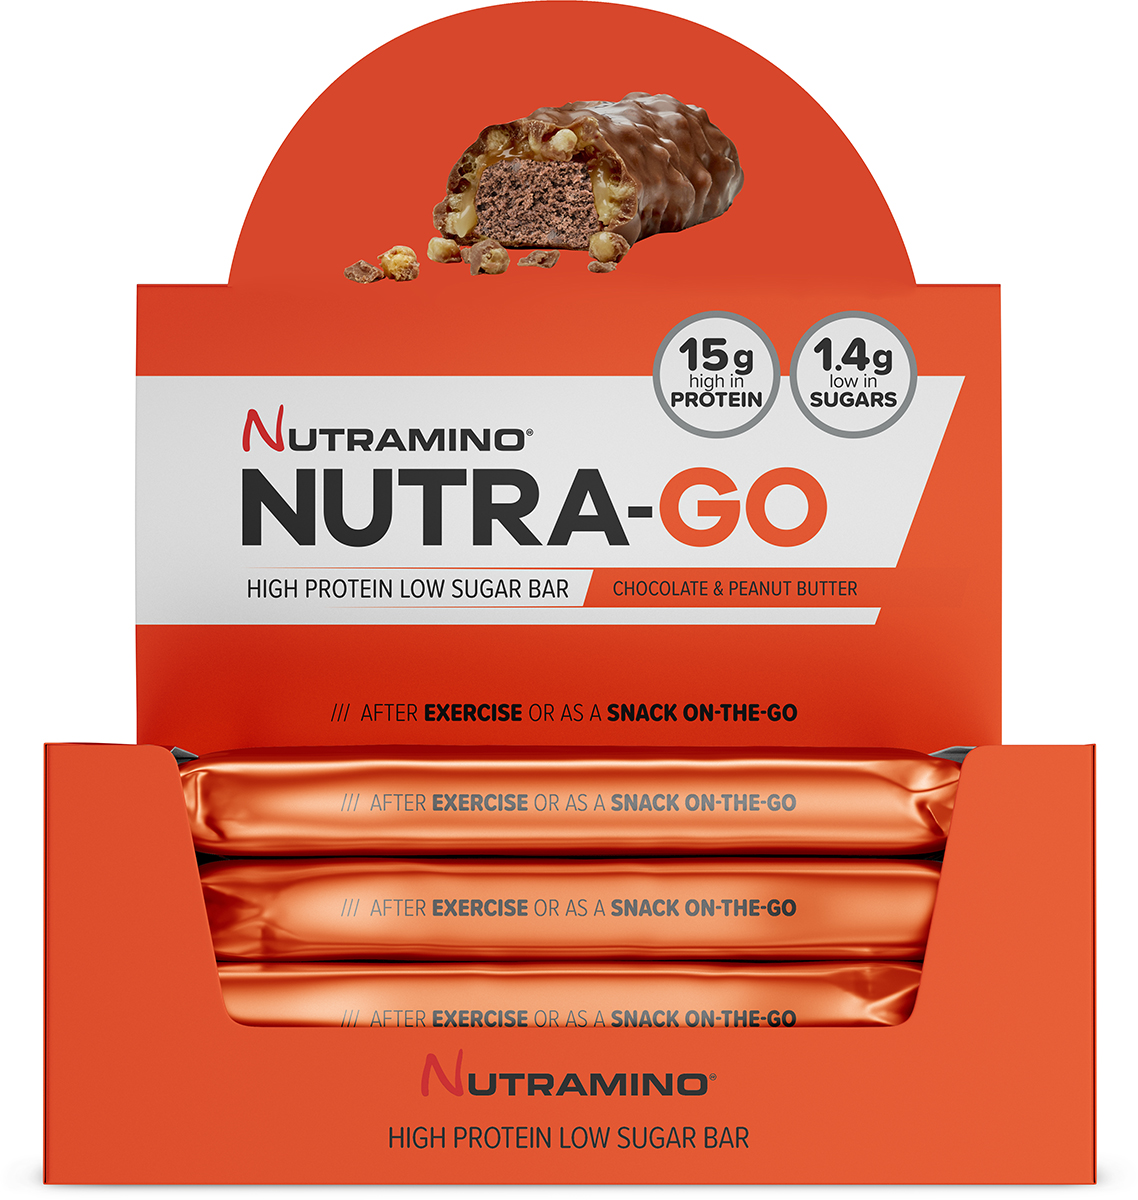 Nutramino Low Sugar Protein Bars (15 x 48g)   Protein bar and powder